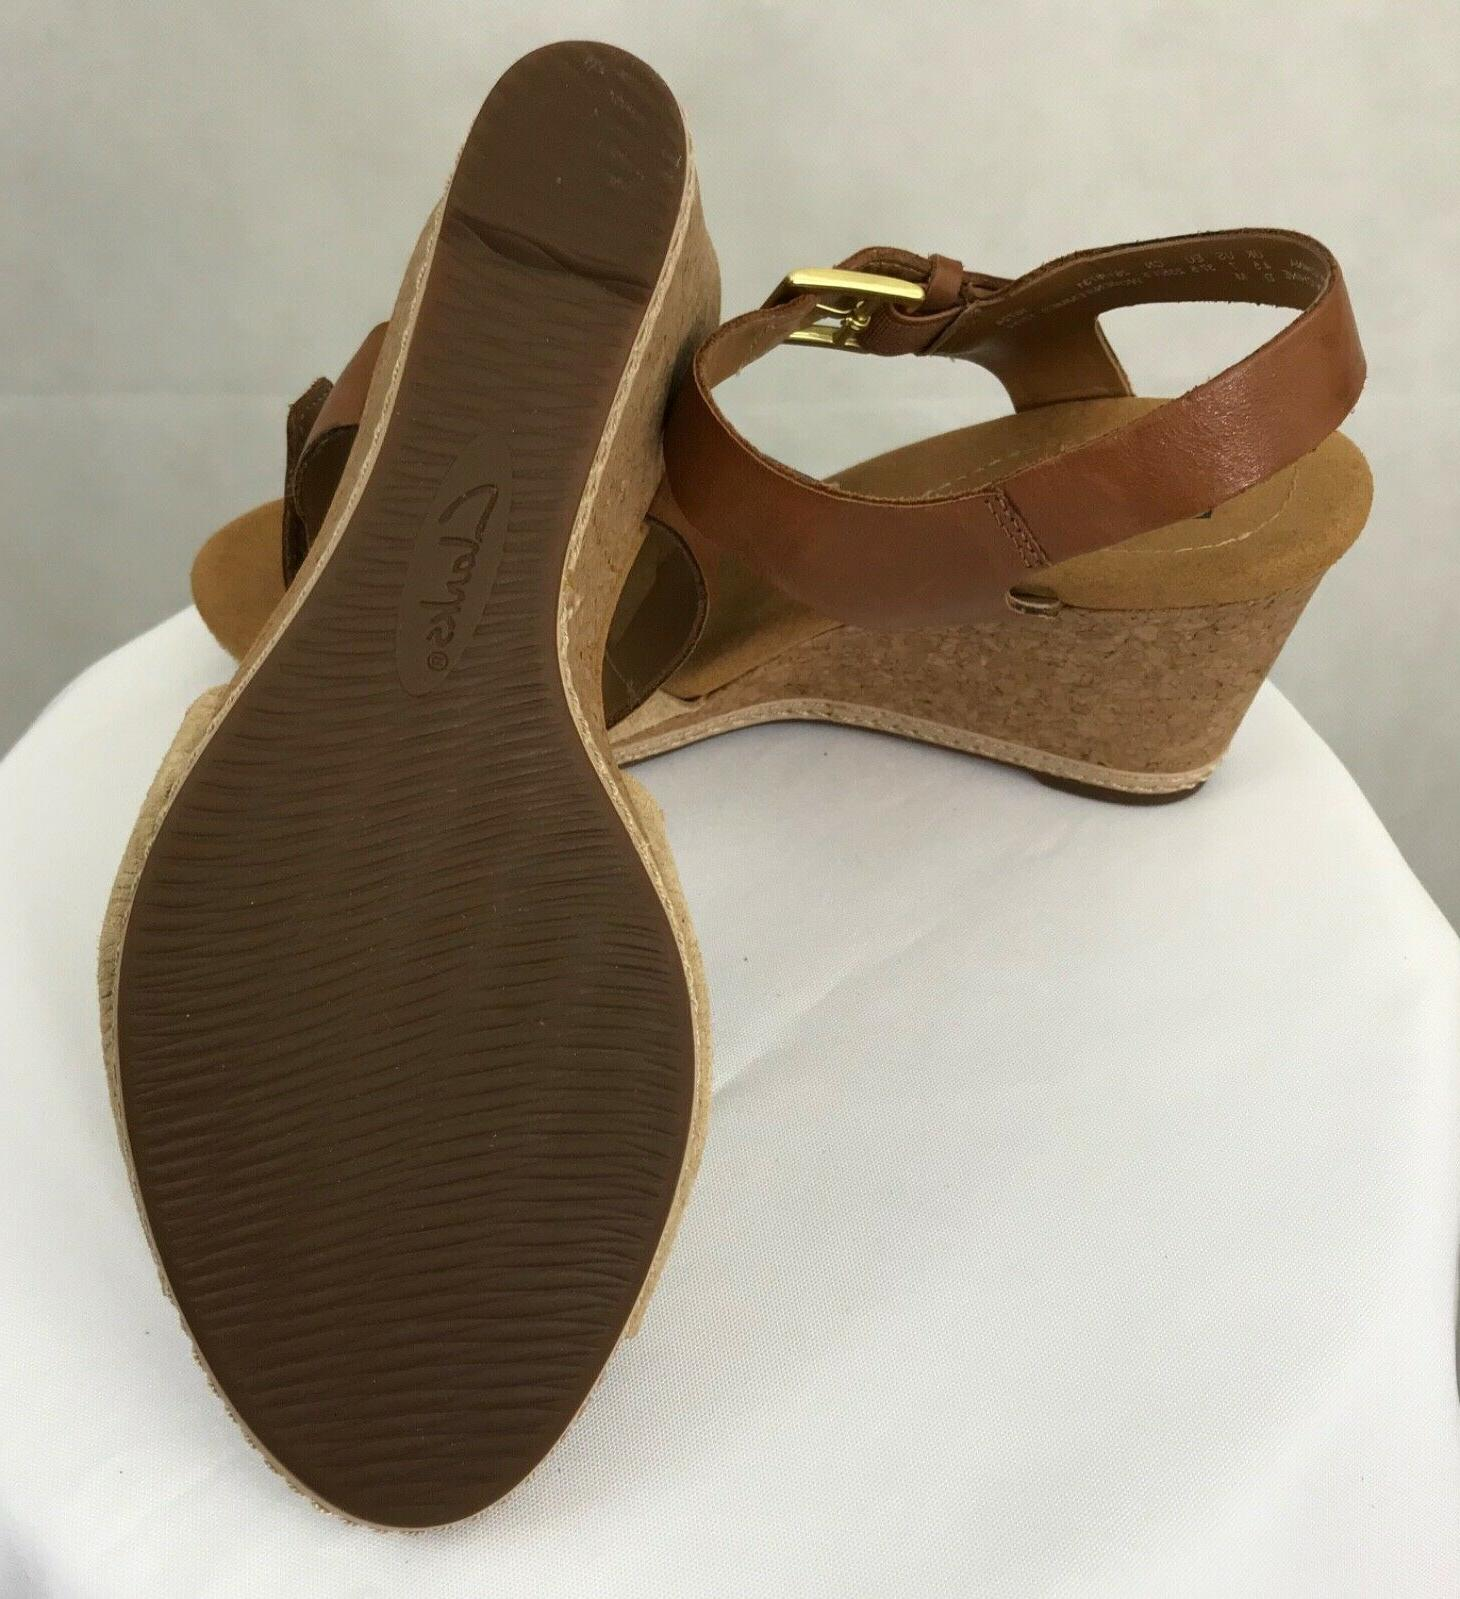 Women's Clarks Cork Wedge Sandals New